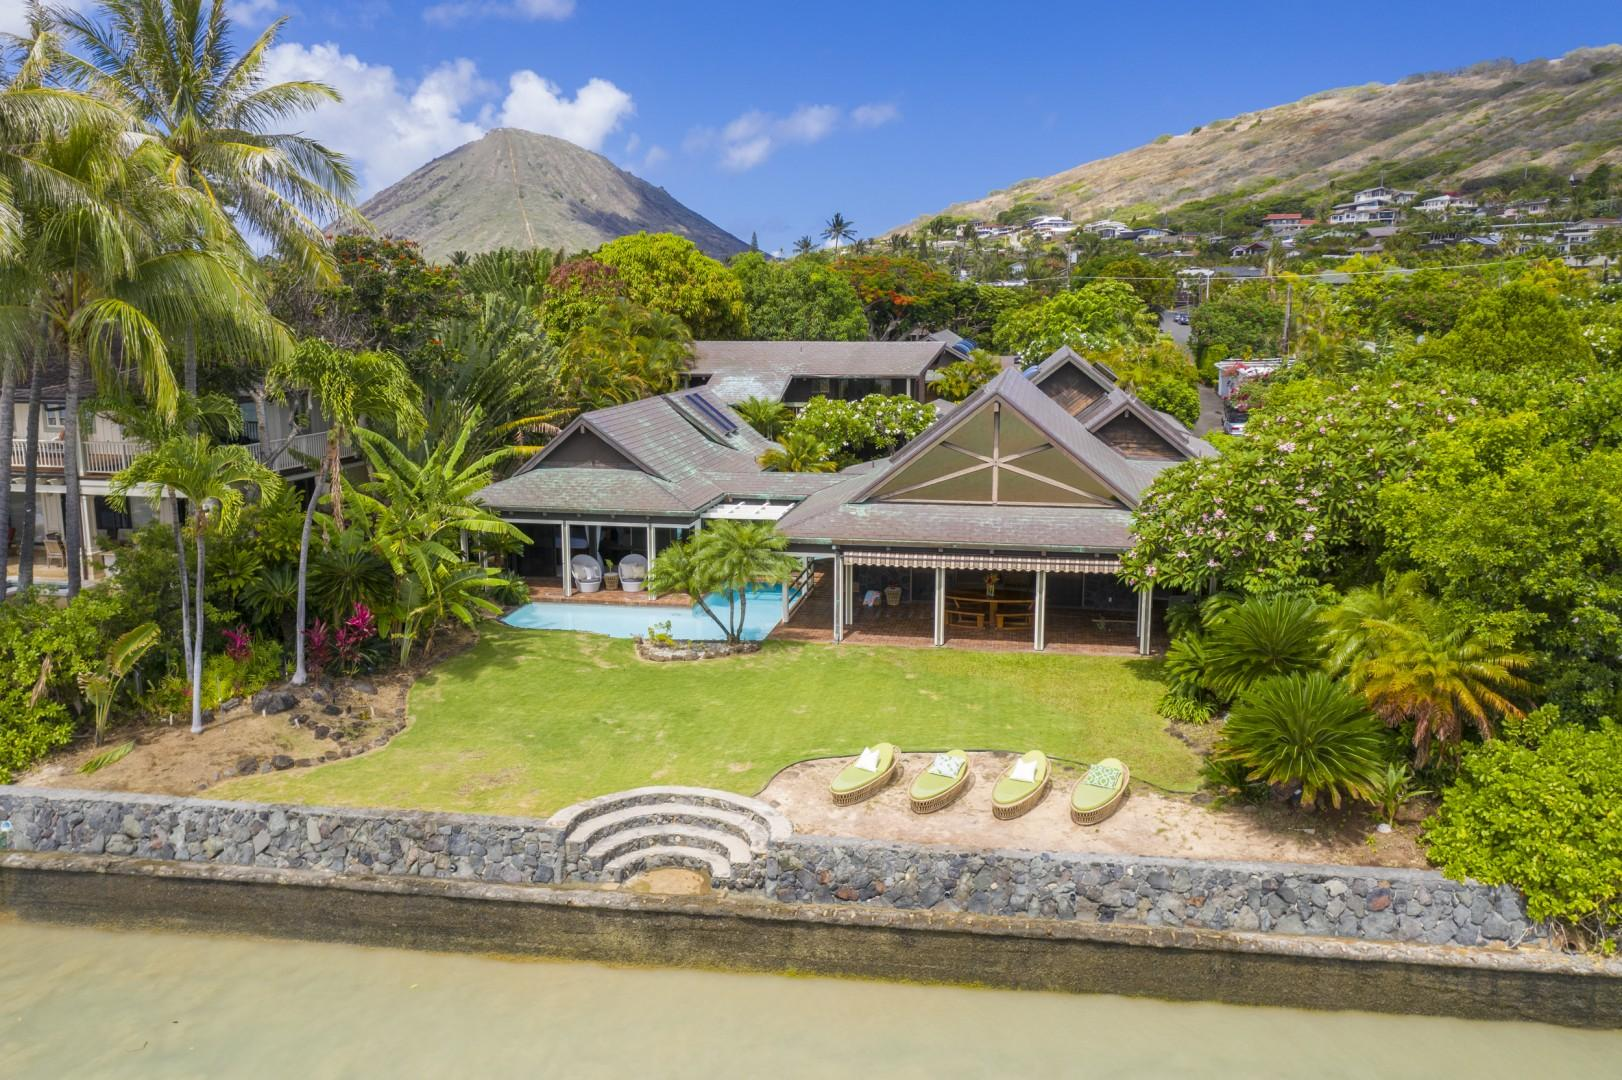 Large Oceanfront Yard with Lounge Area